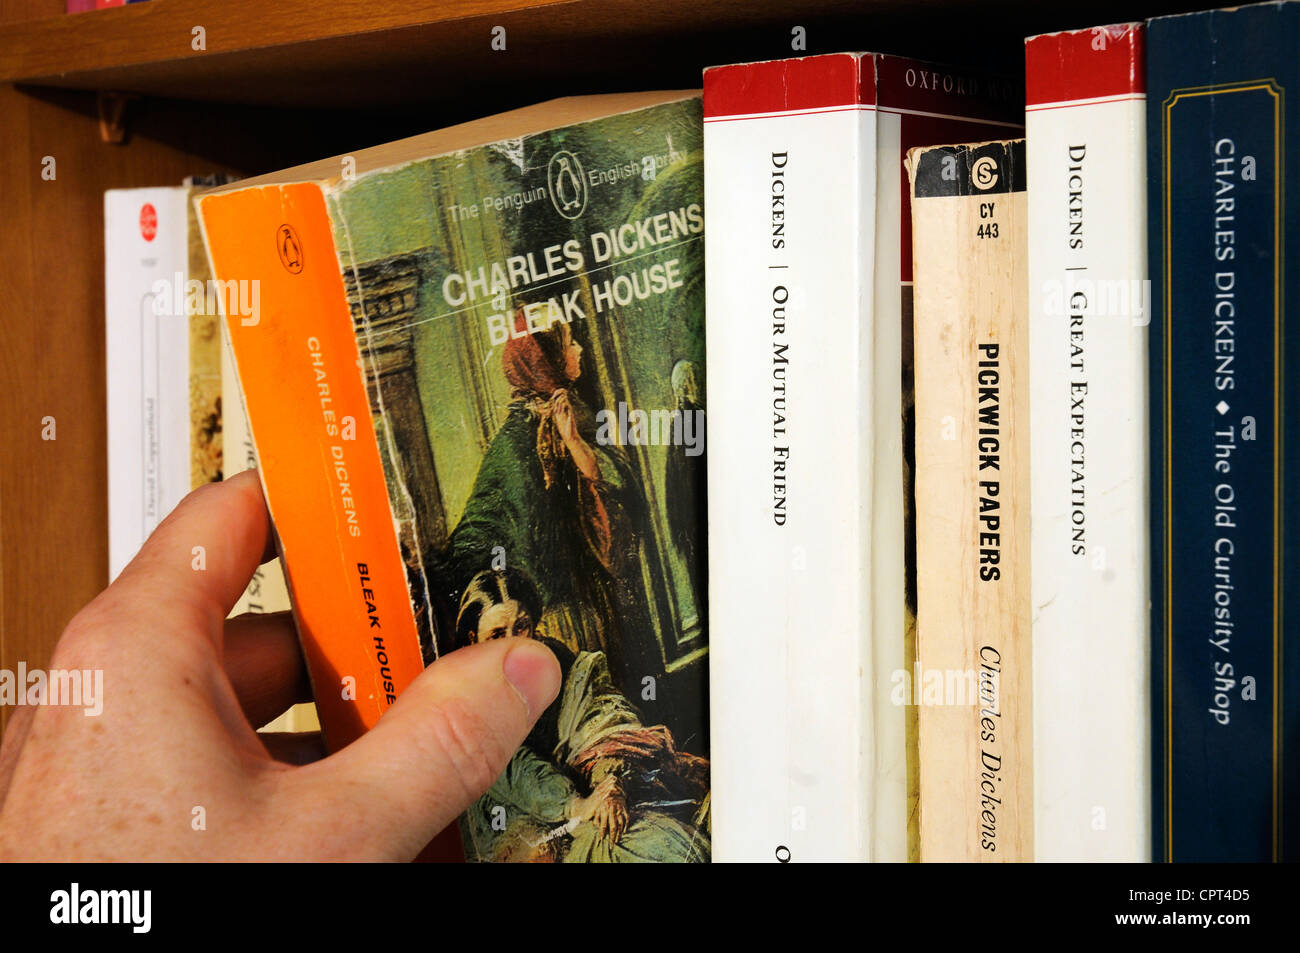 A hand taking Charles Dickens Bleak House from a bookshelf - Stock Image